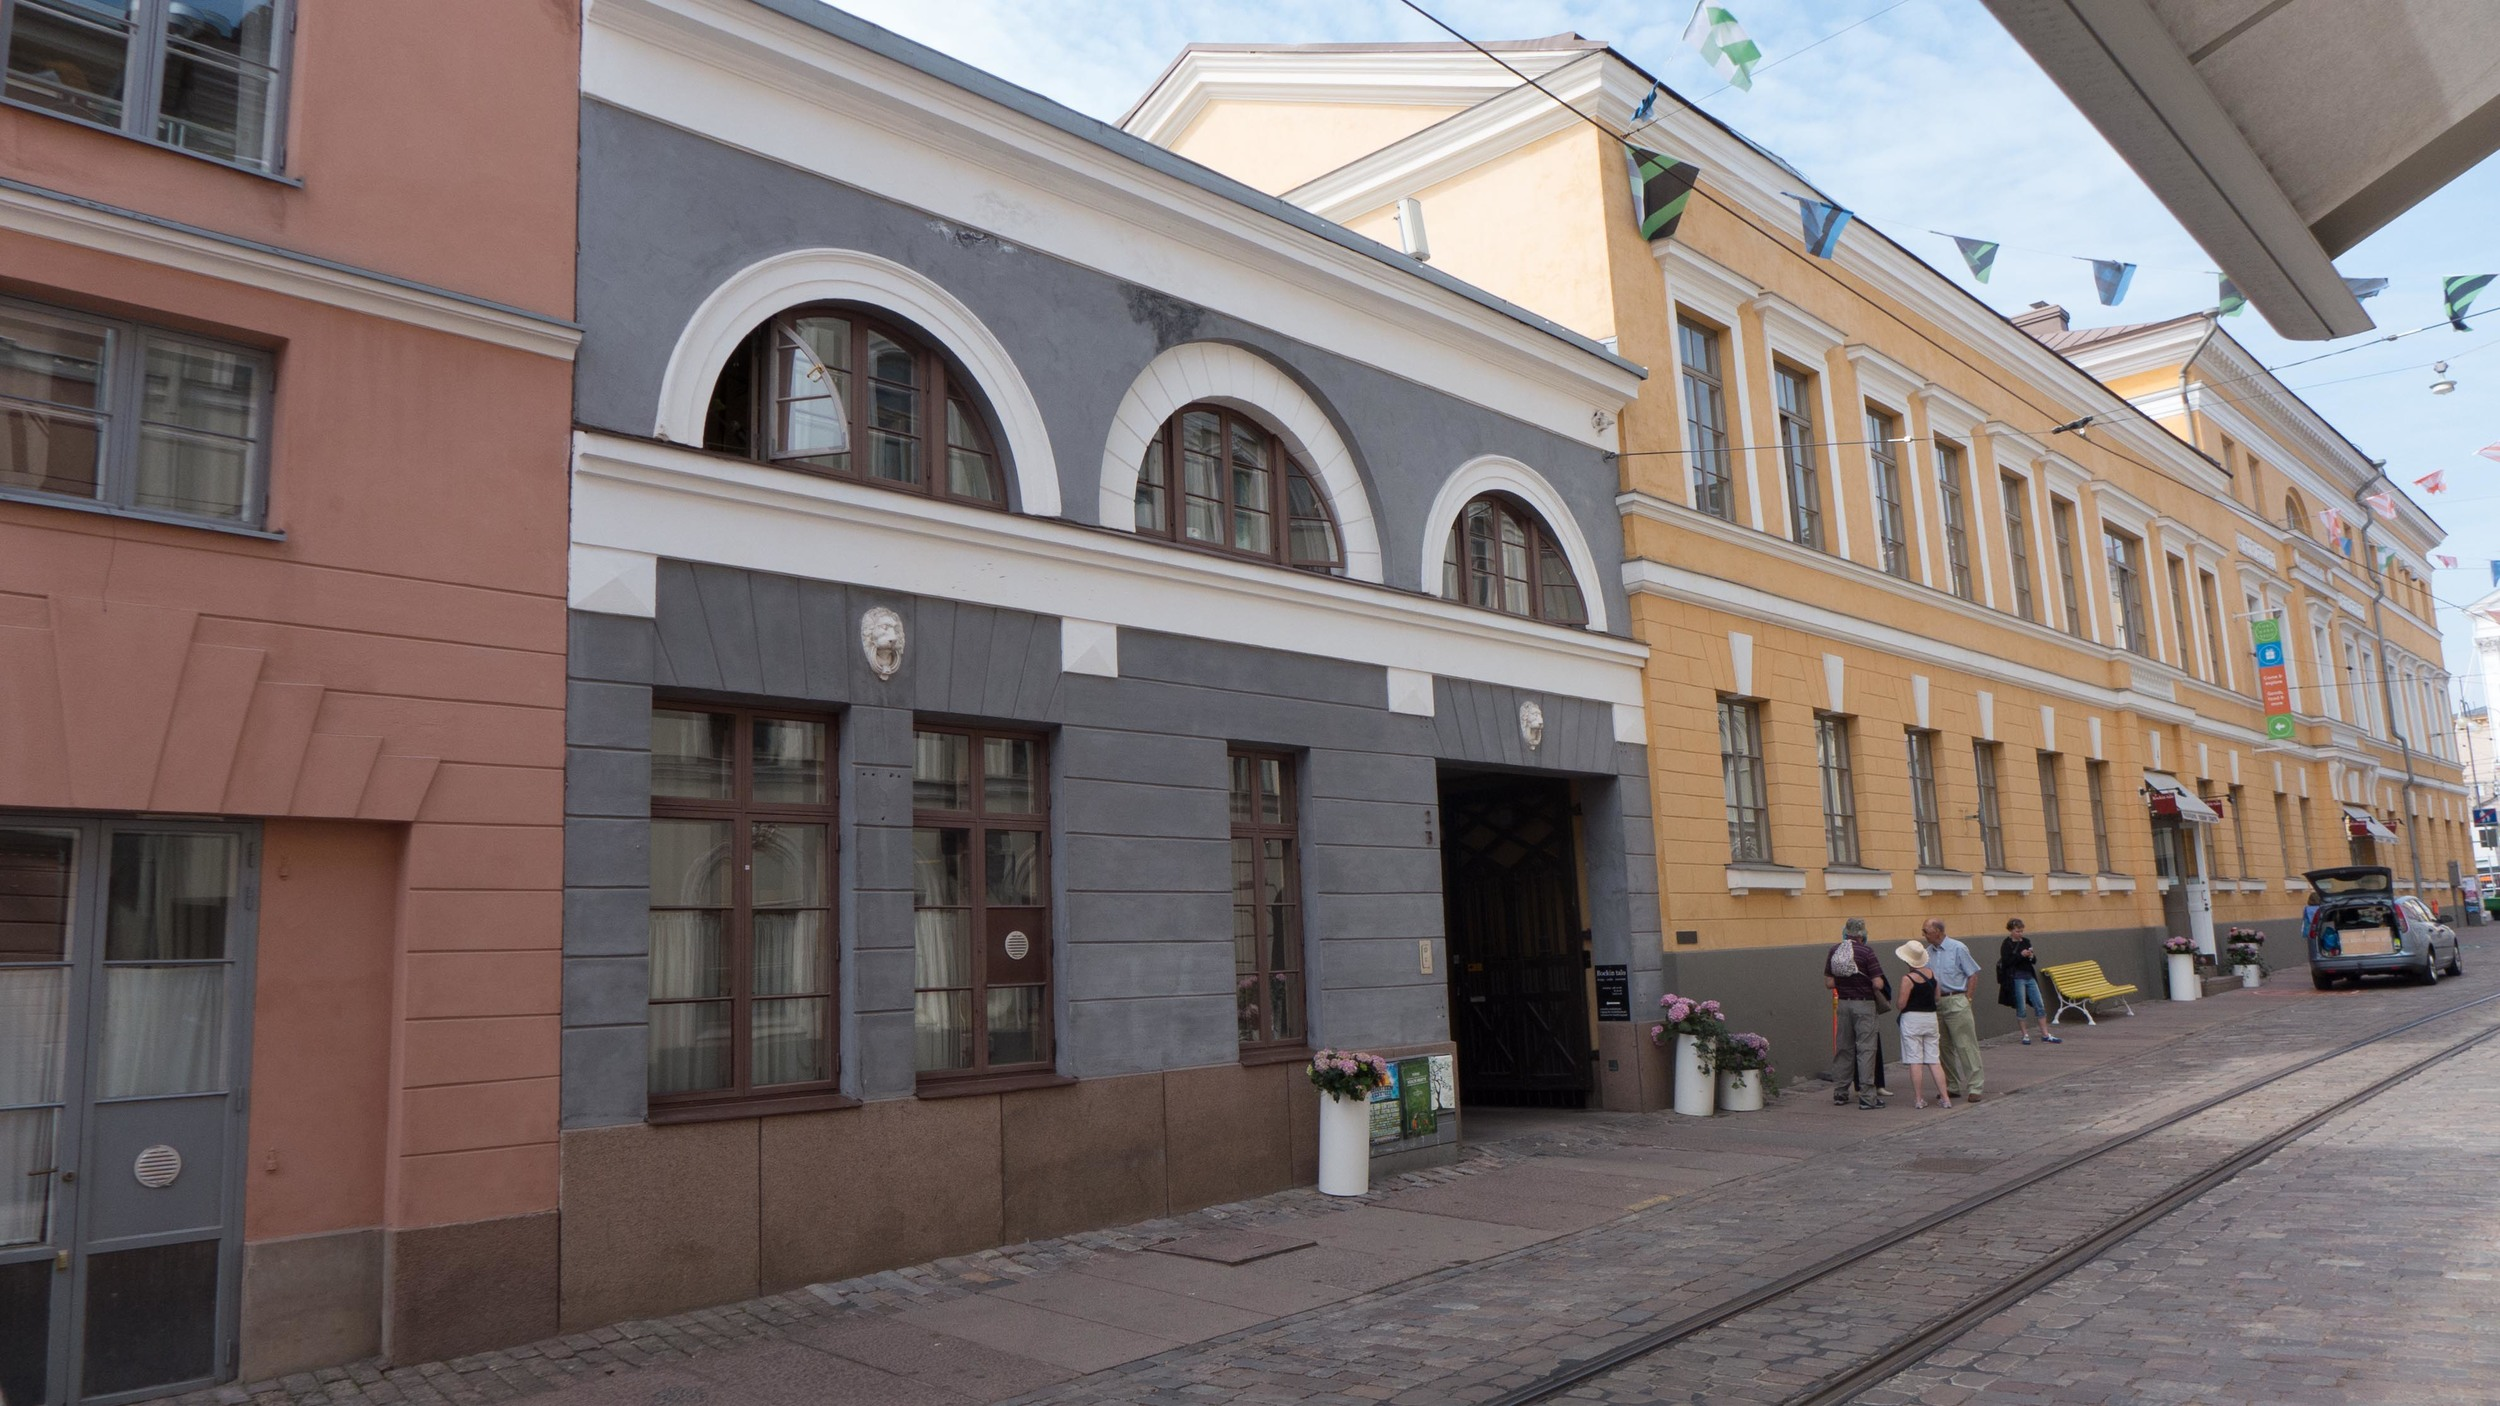 19th-century buildings in a street south of the cathedral in Helsinki